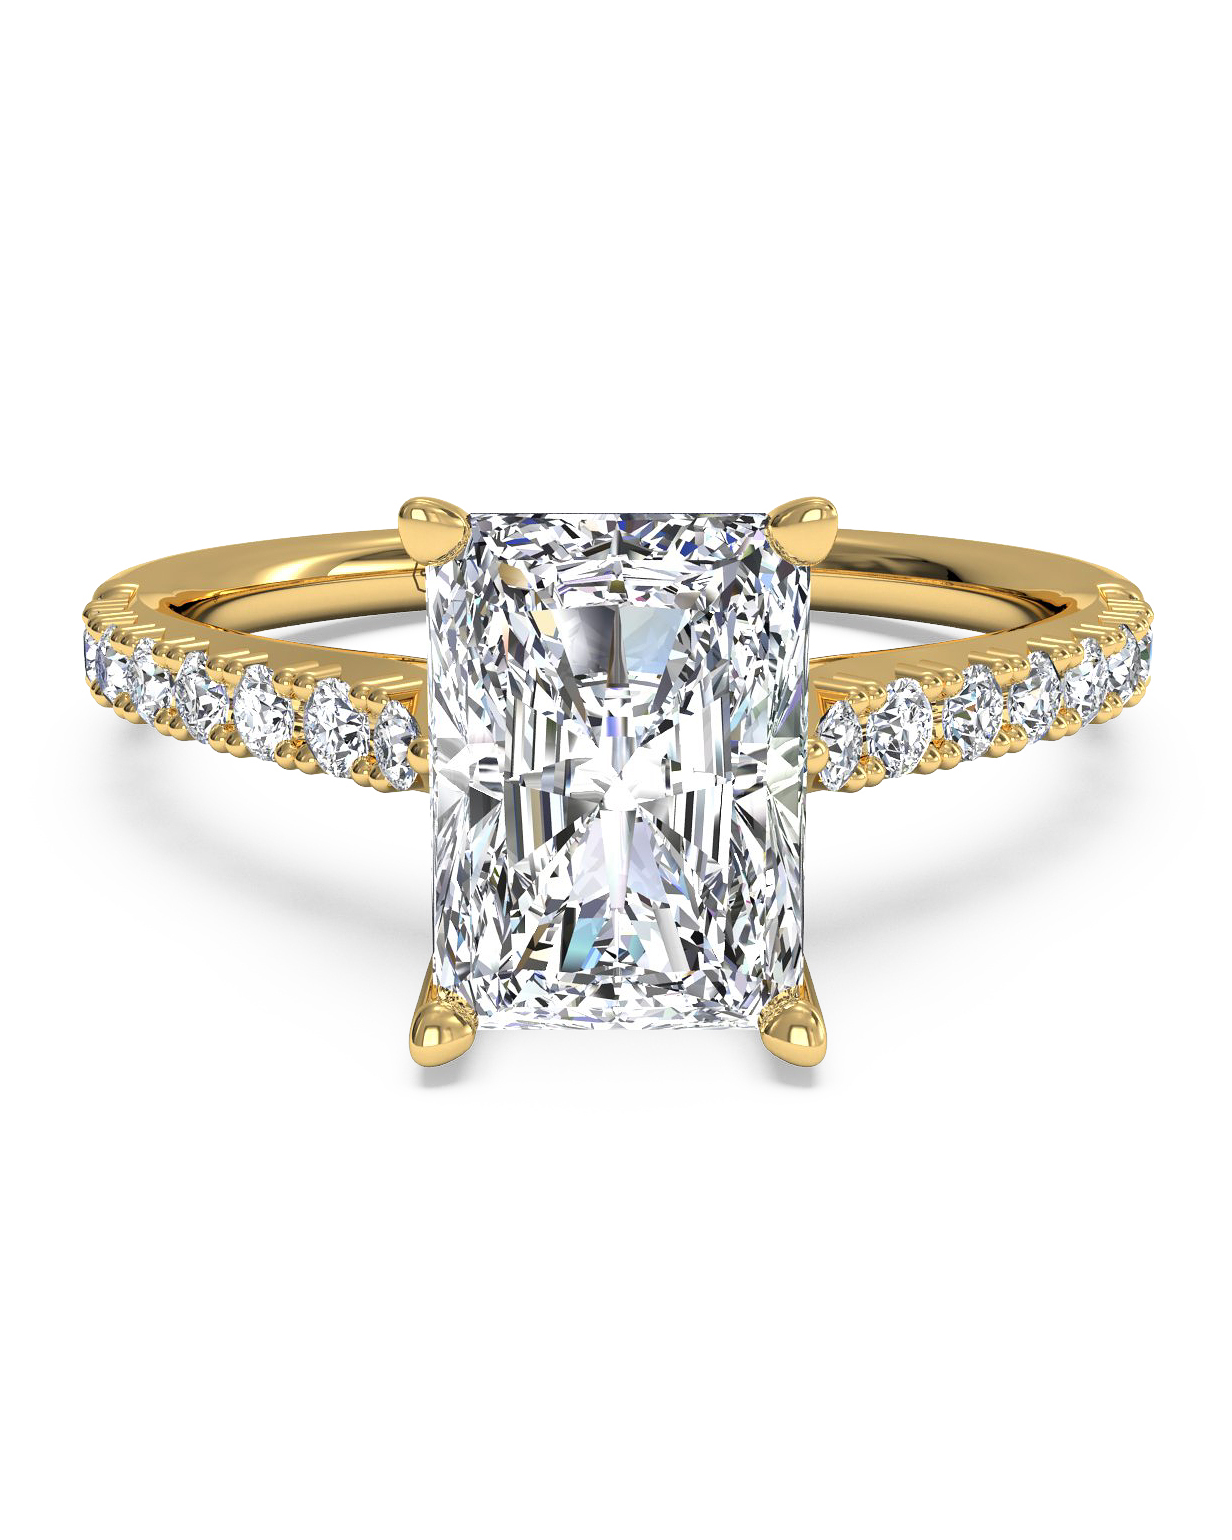 ritani-yellow-gold-french-set-diamond-band-engagement-ring-0816.jpg